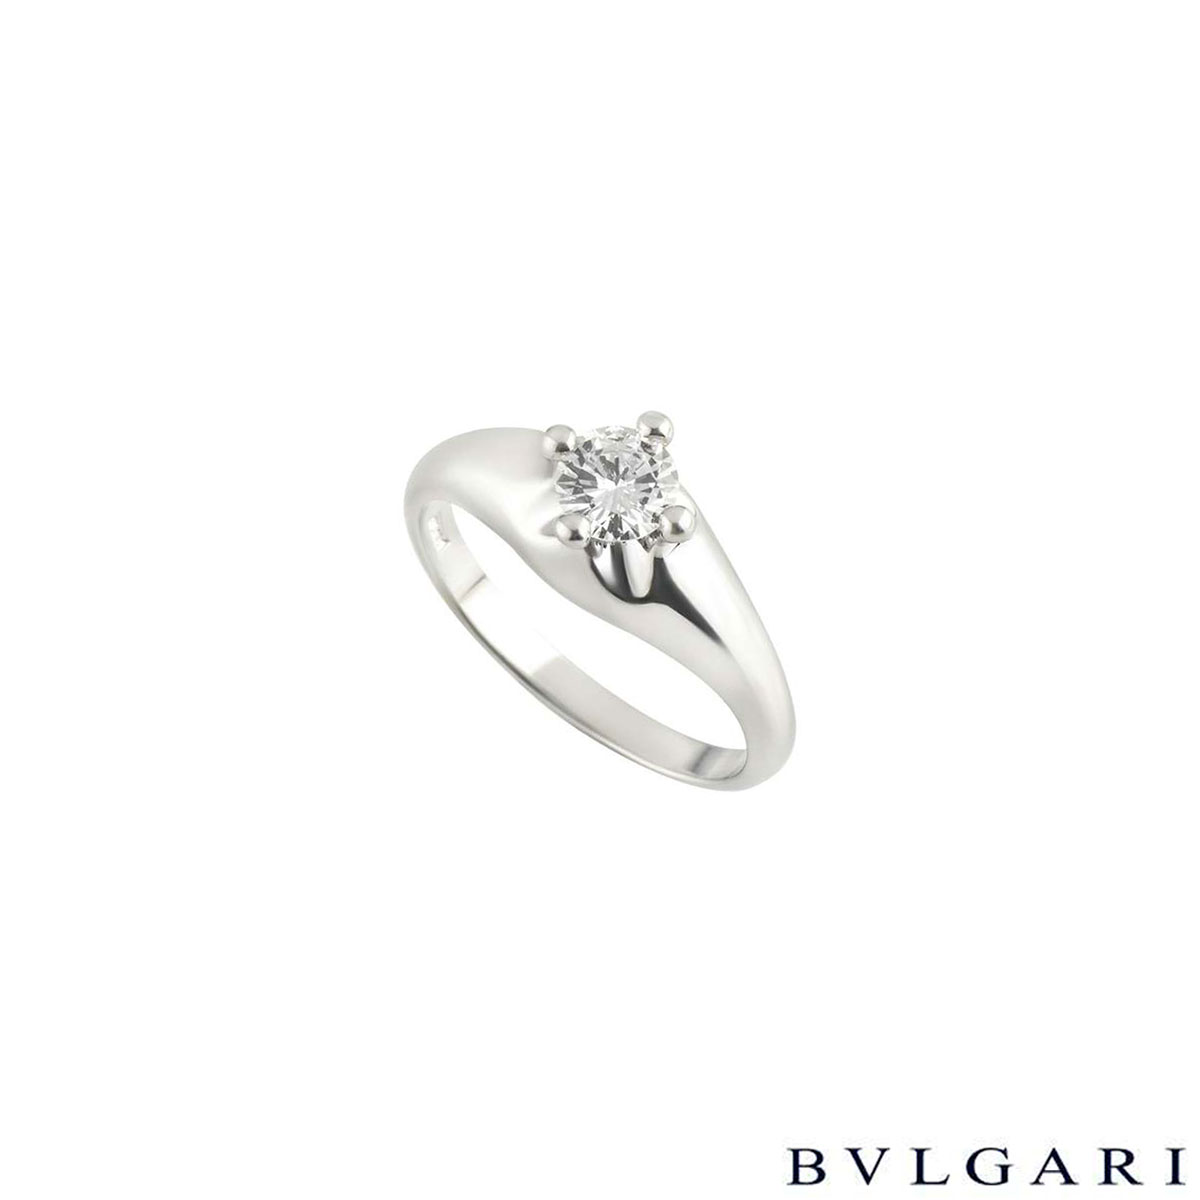 Bvlgari Corona Diamond Platinum Ring